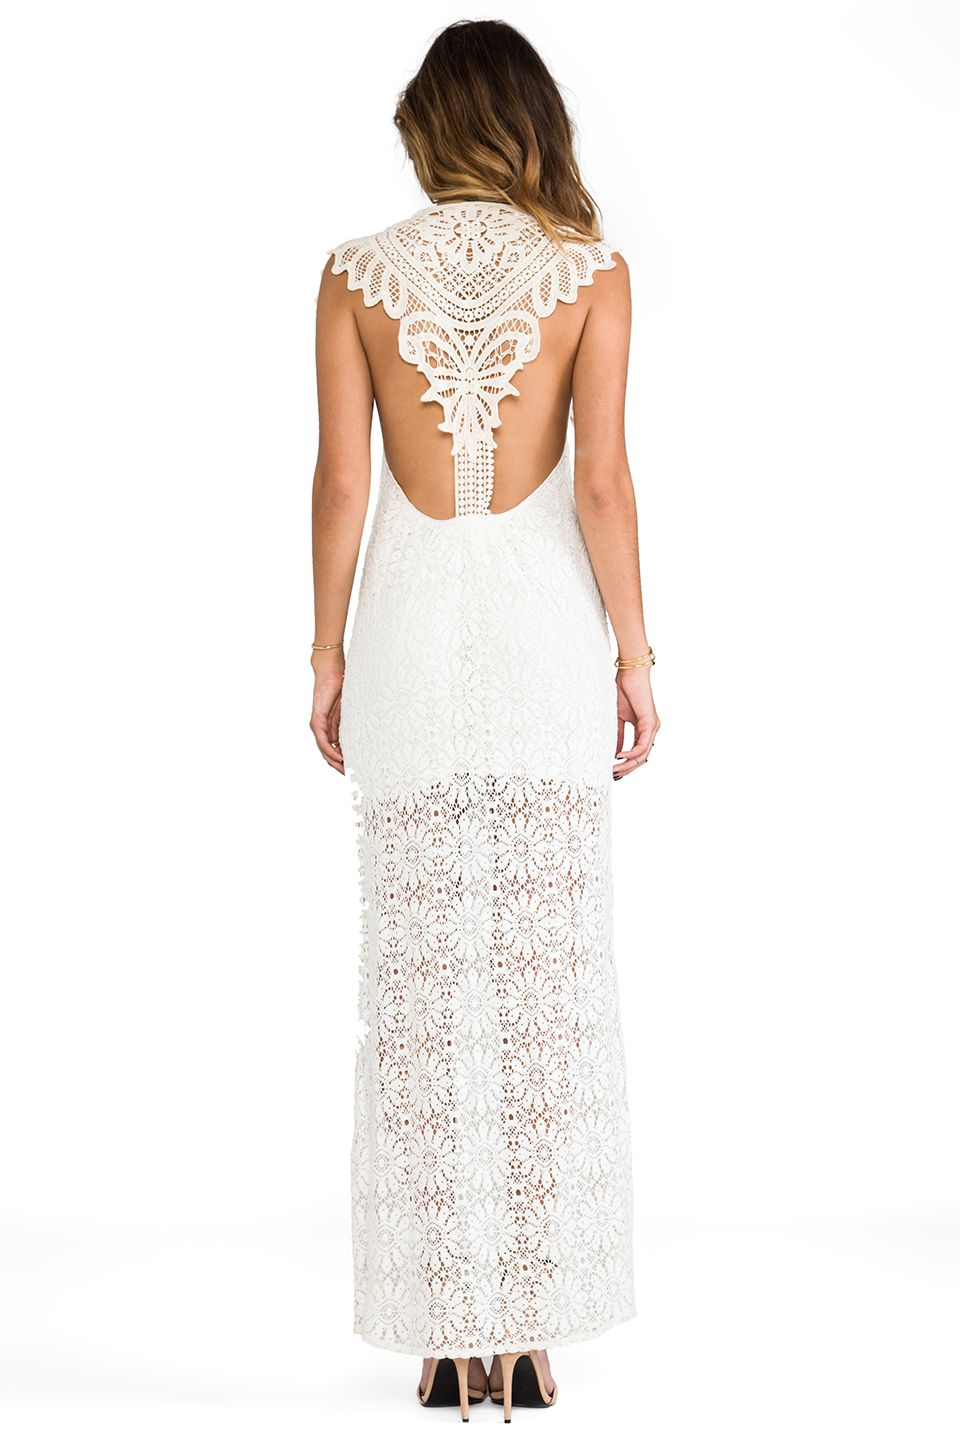 If I had a wedding board this dress would go on it. #lace #maxi